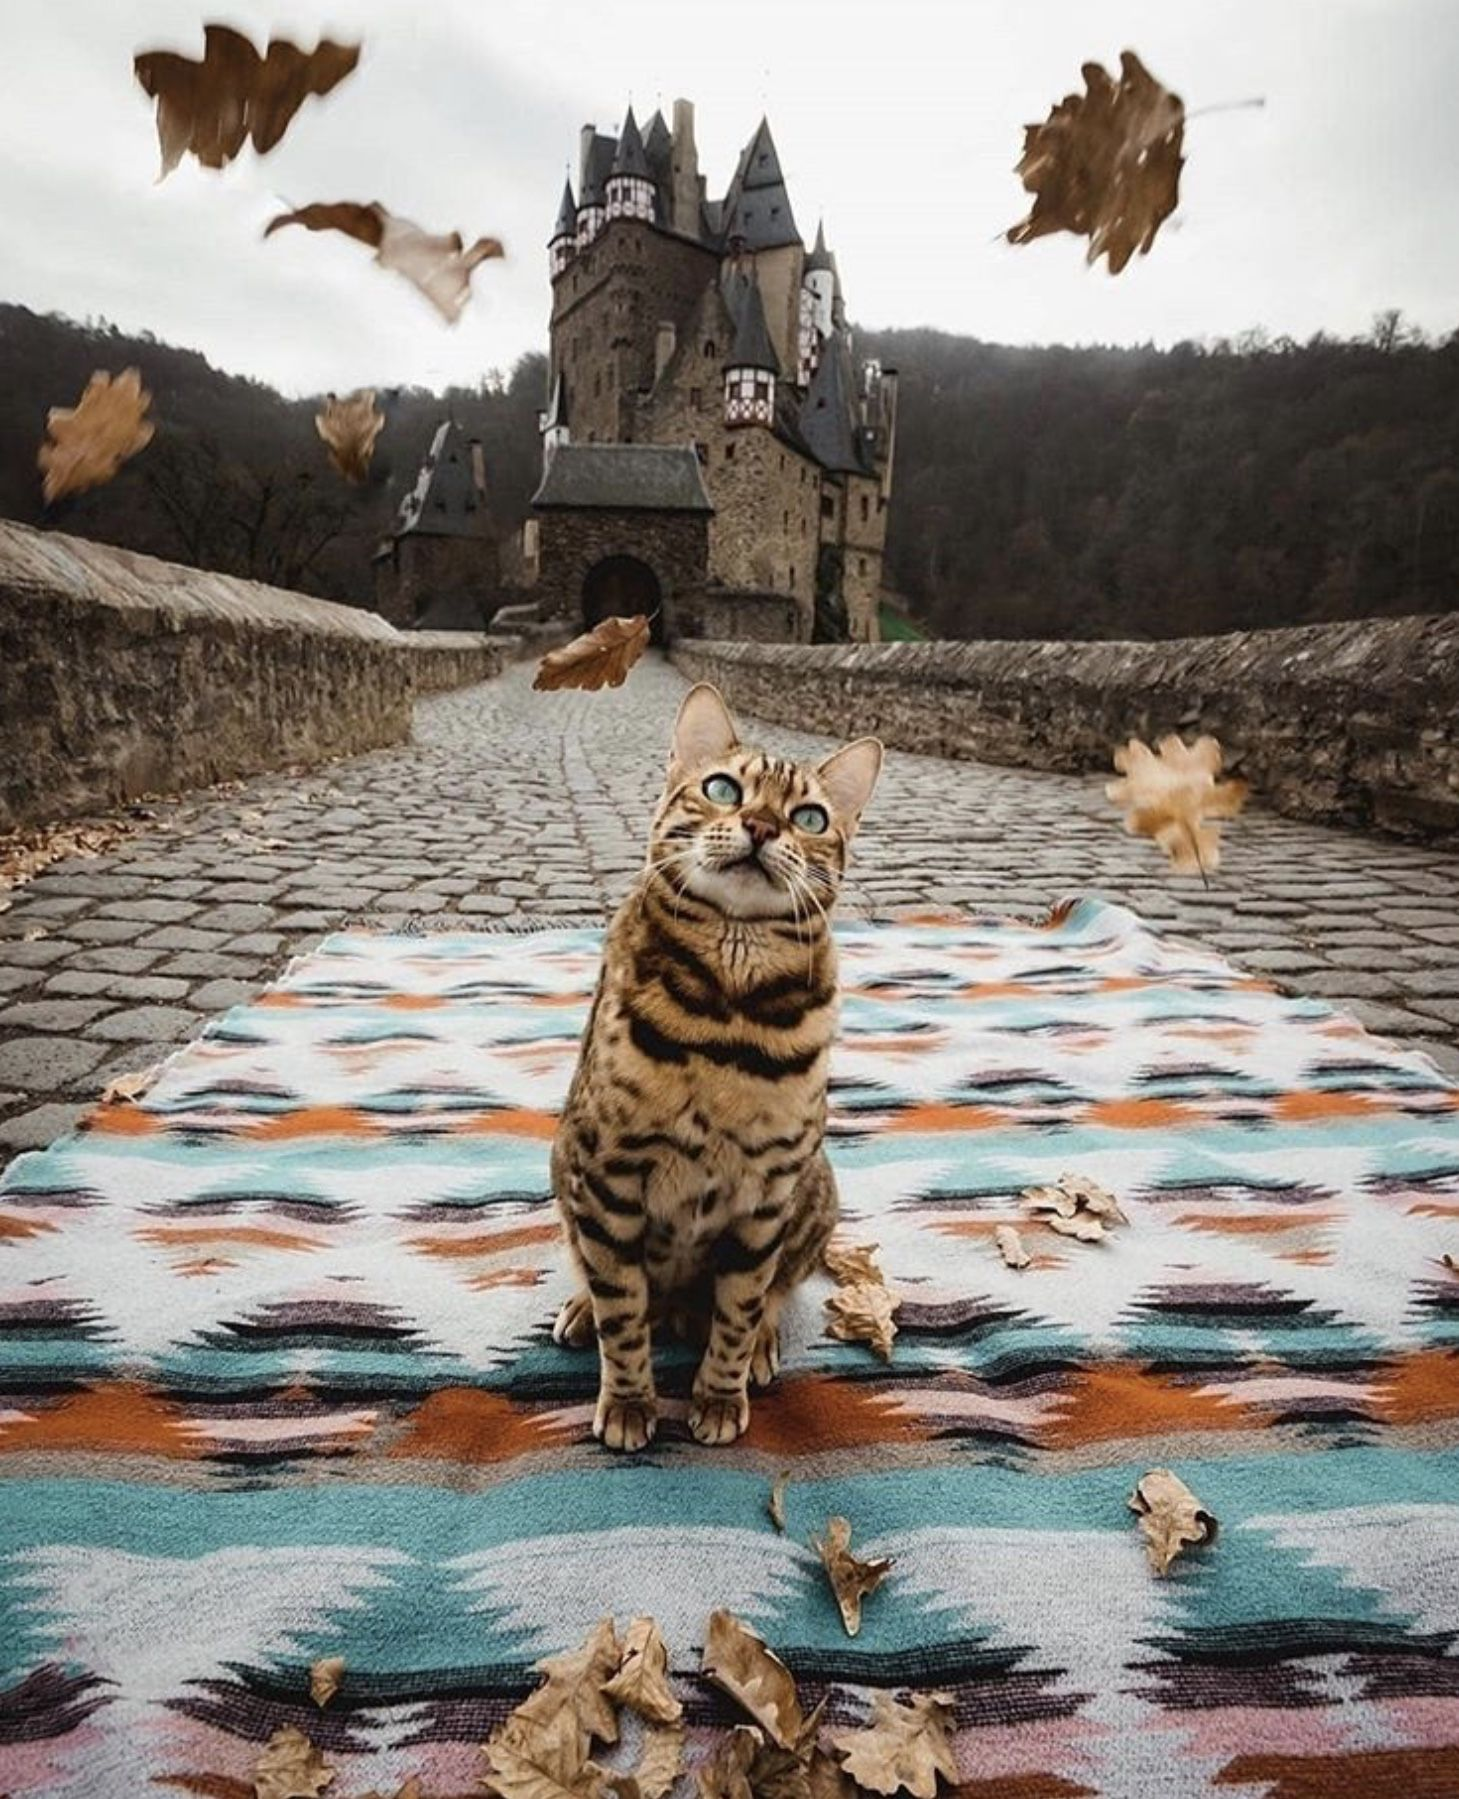 Pin by Ria Fisher on Cat Crazy in 2020 Adventure cat